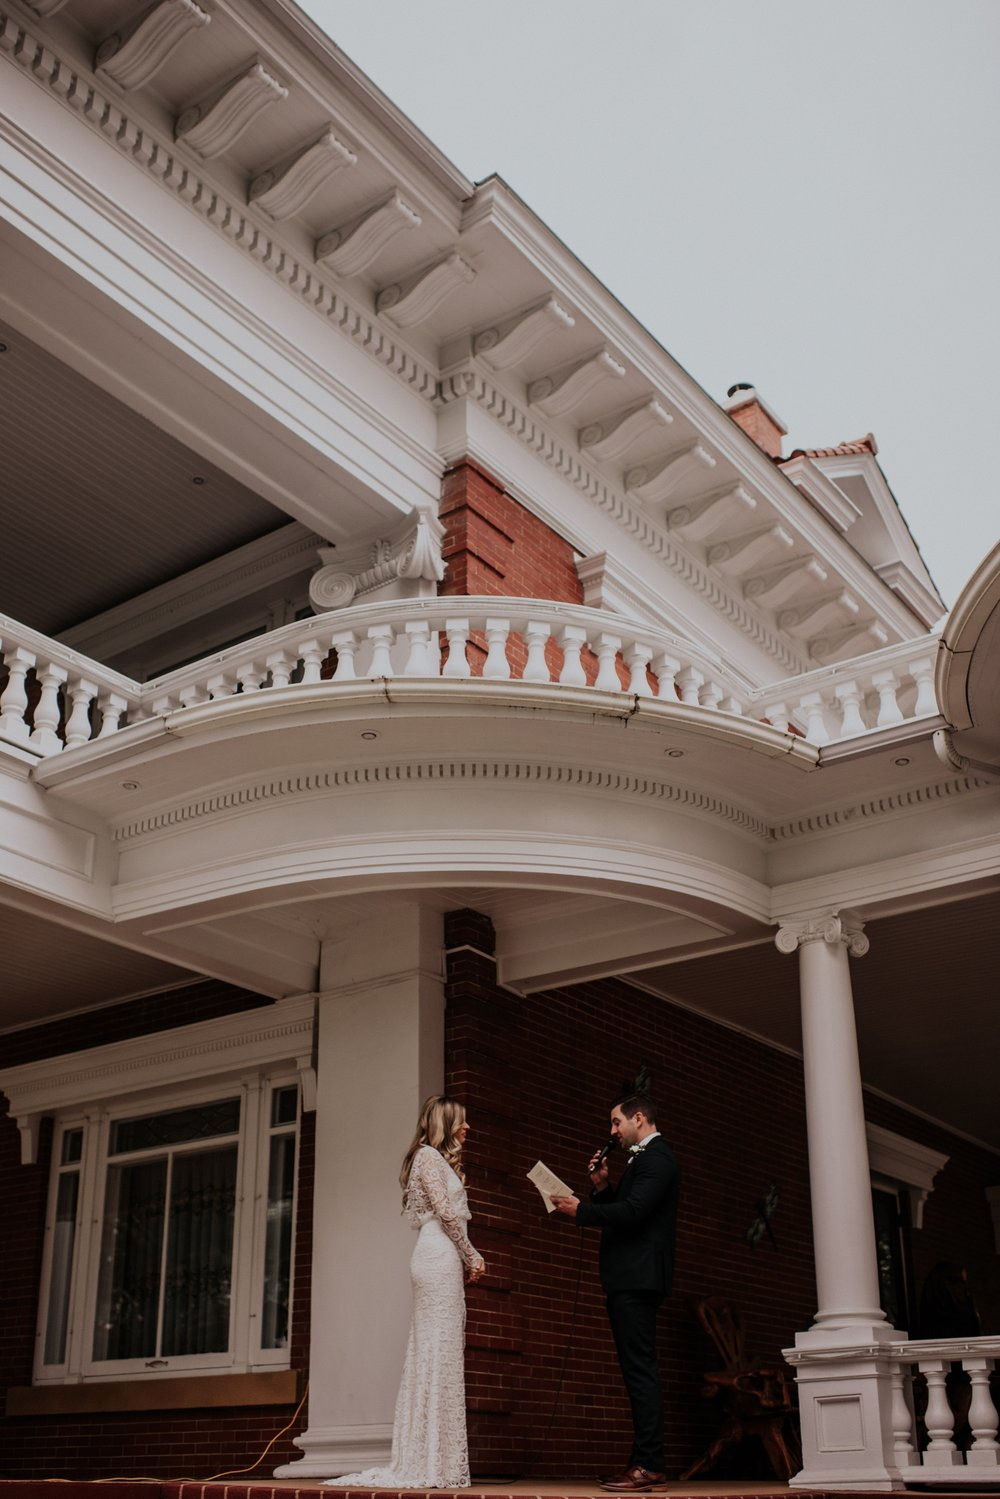 Wedding and Elopement Photography_Karly Ford Photo 54.jpg